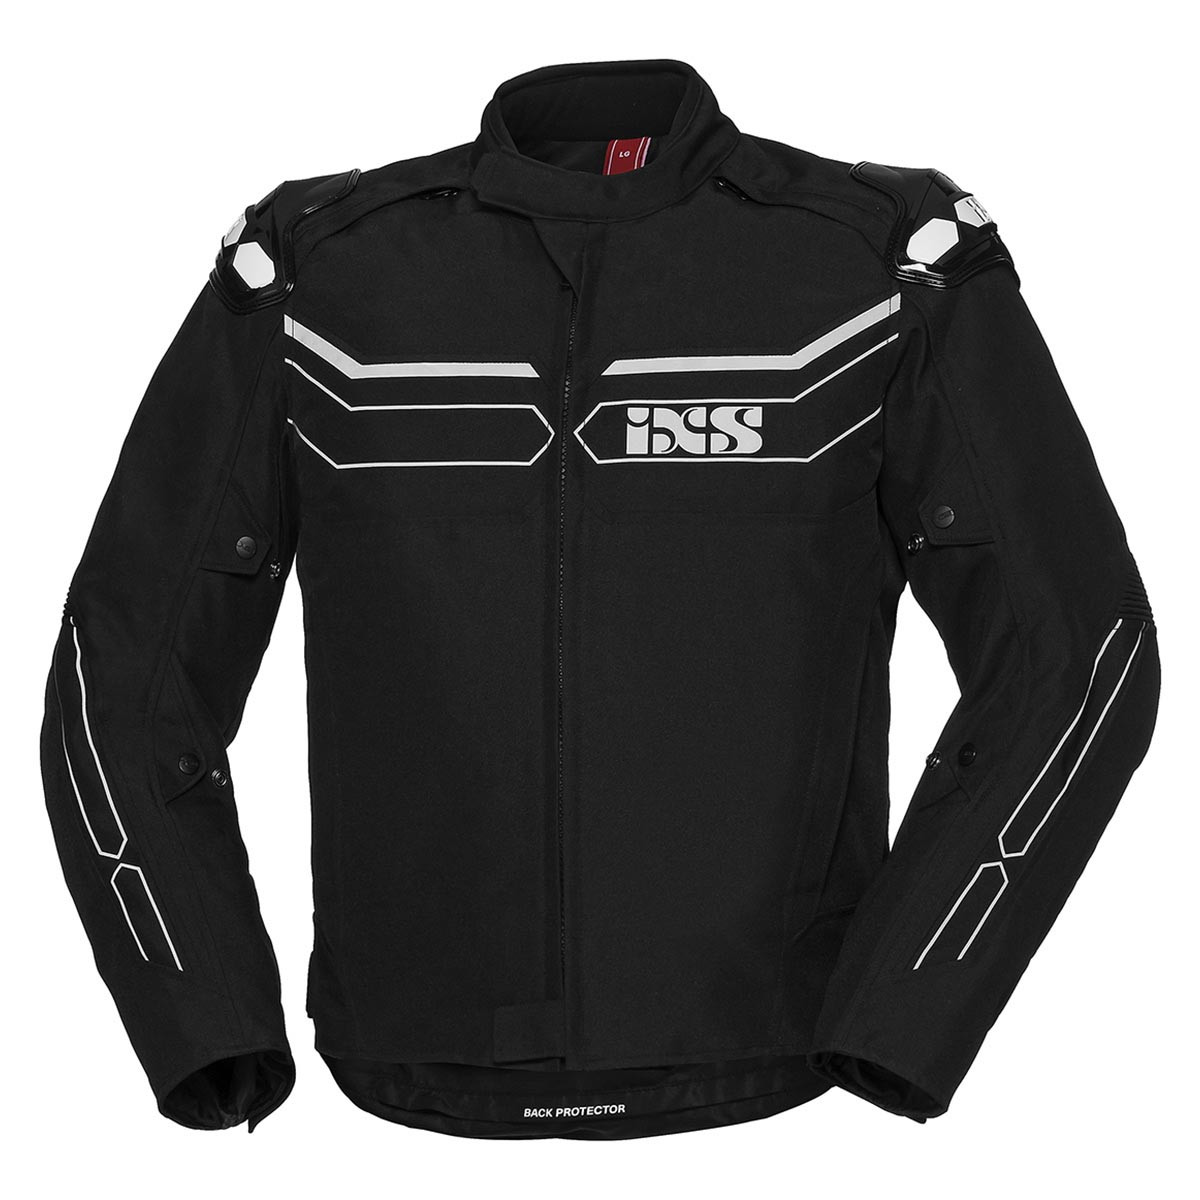 RS-1000-ST JACKET